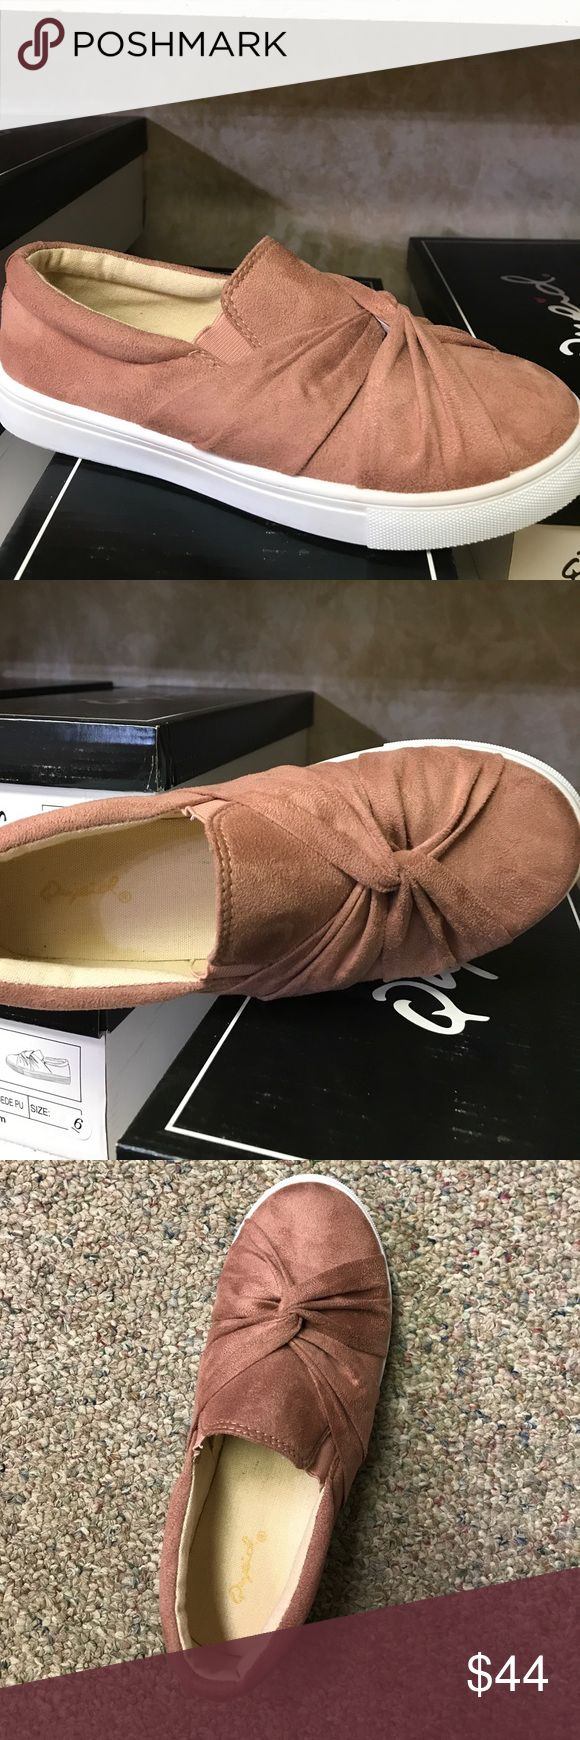 Tennis shoes NEW Mauve Suede slip on Tennis shoes Qupid Shoes Sneakers